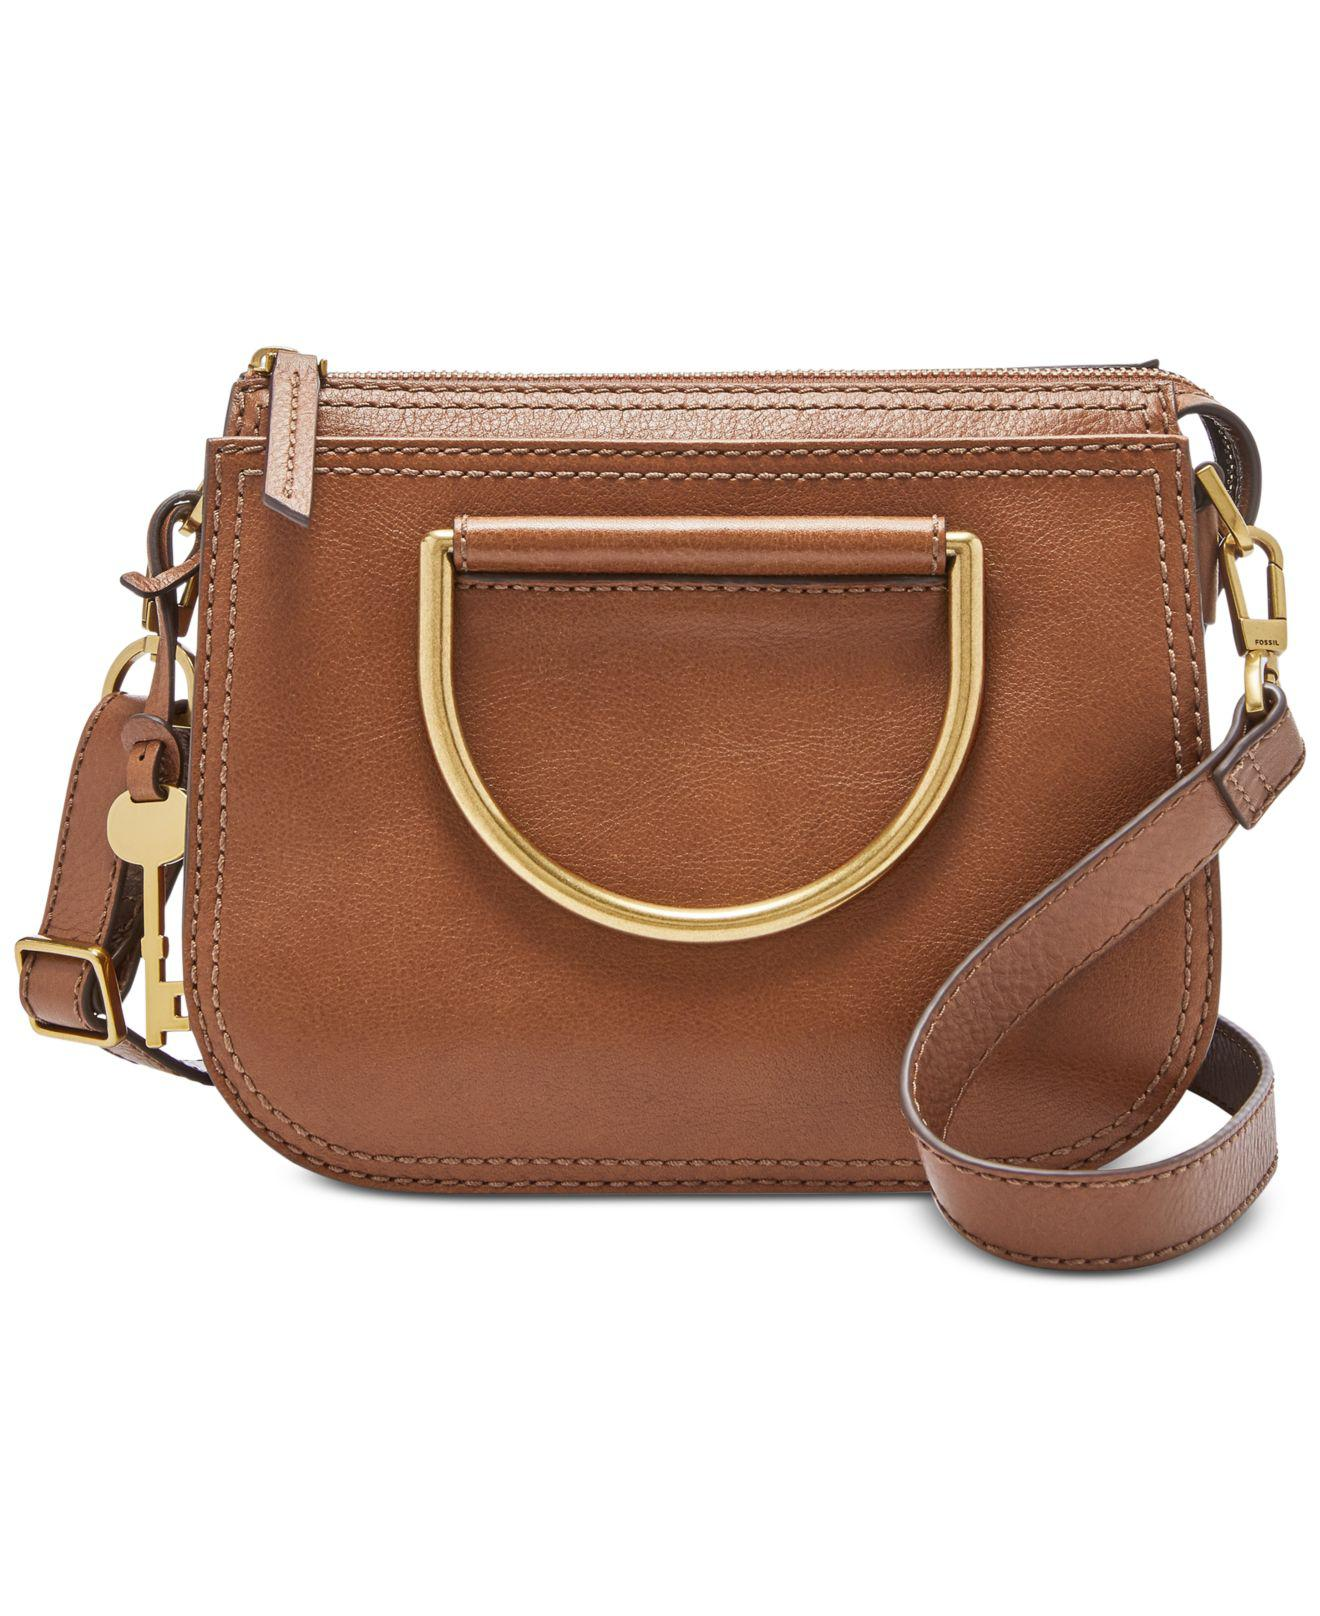 c80843c128 Lyst - Fossil Ryder Leather Top Handle Crossbody in Brown